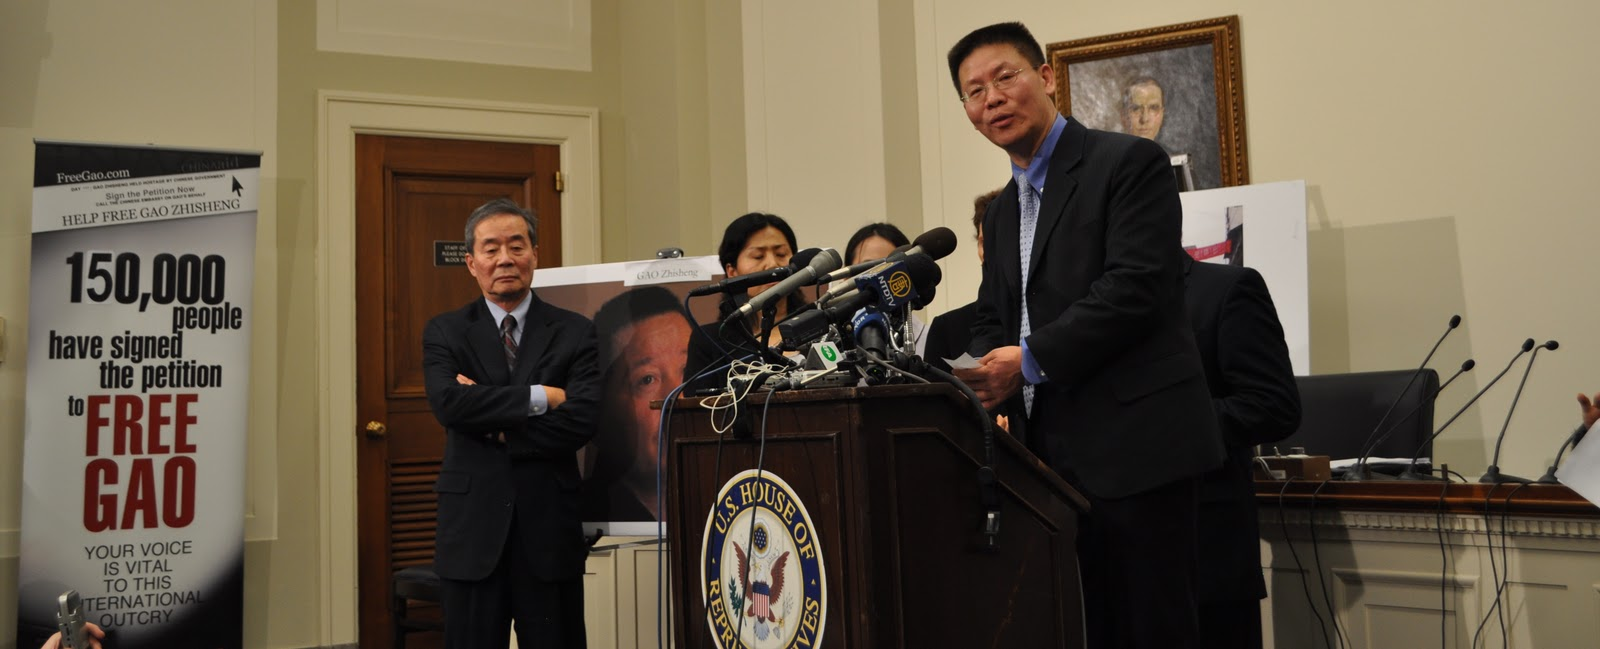 Bob Fu Urges Release of Gao during Obama-Hu`s Meeting